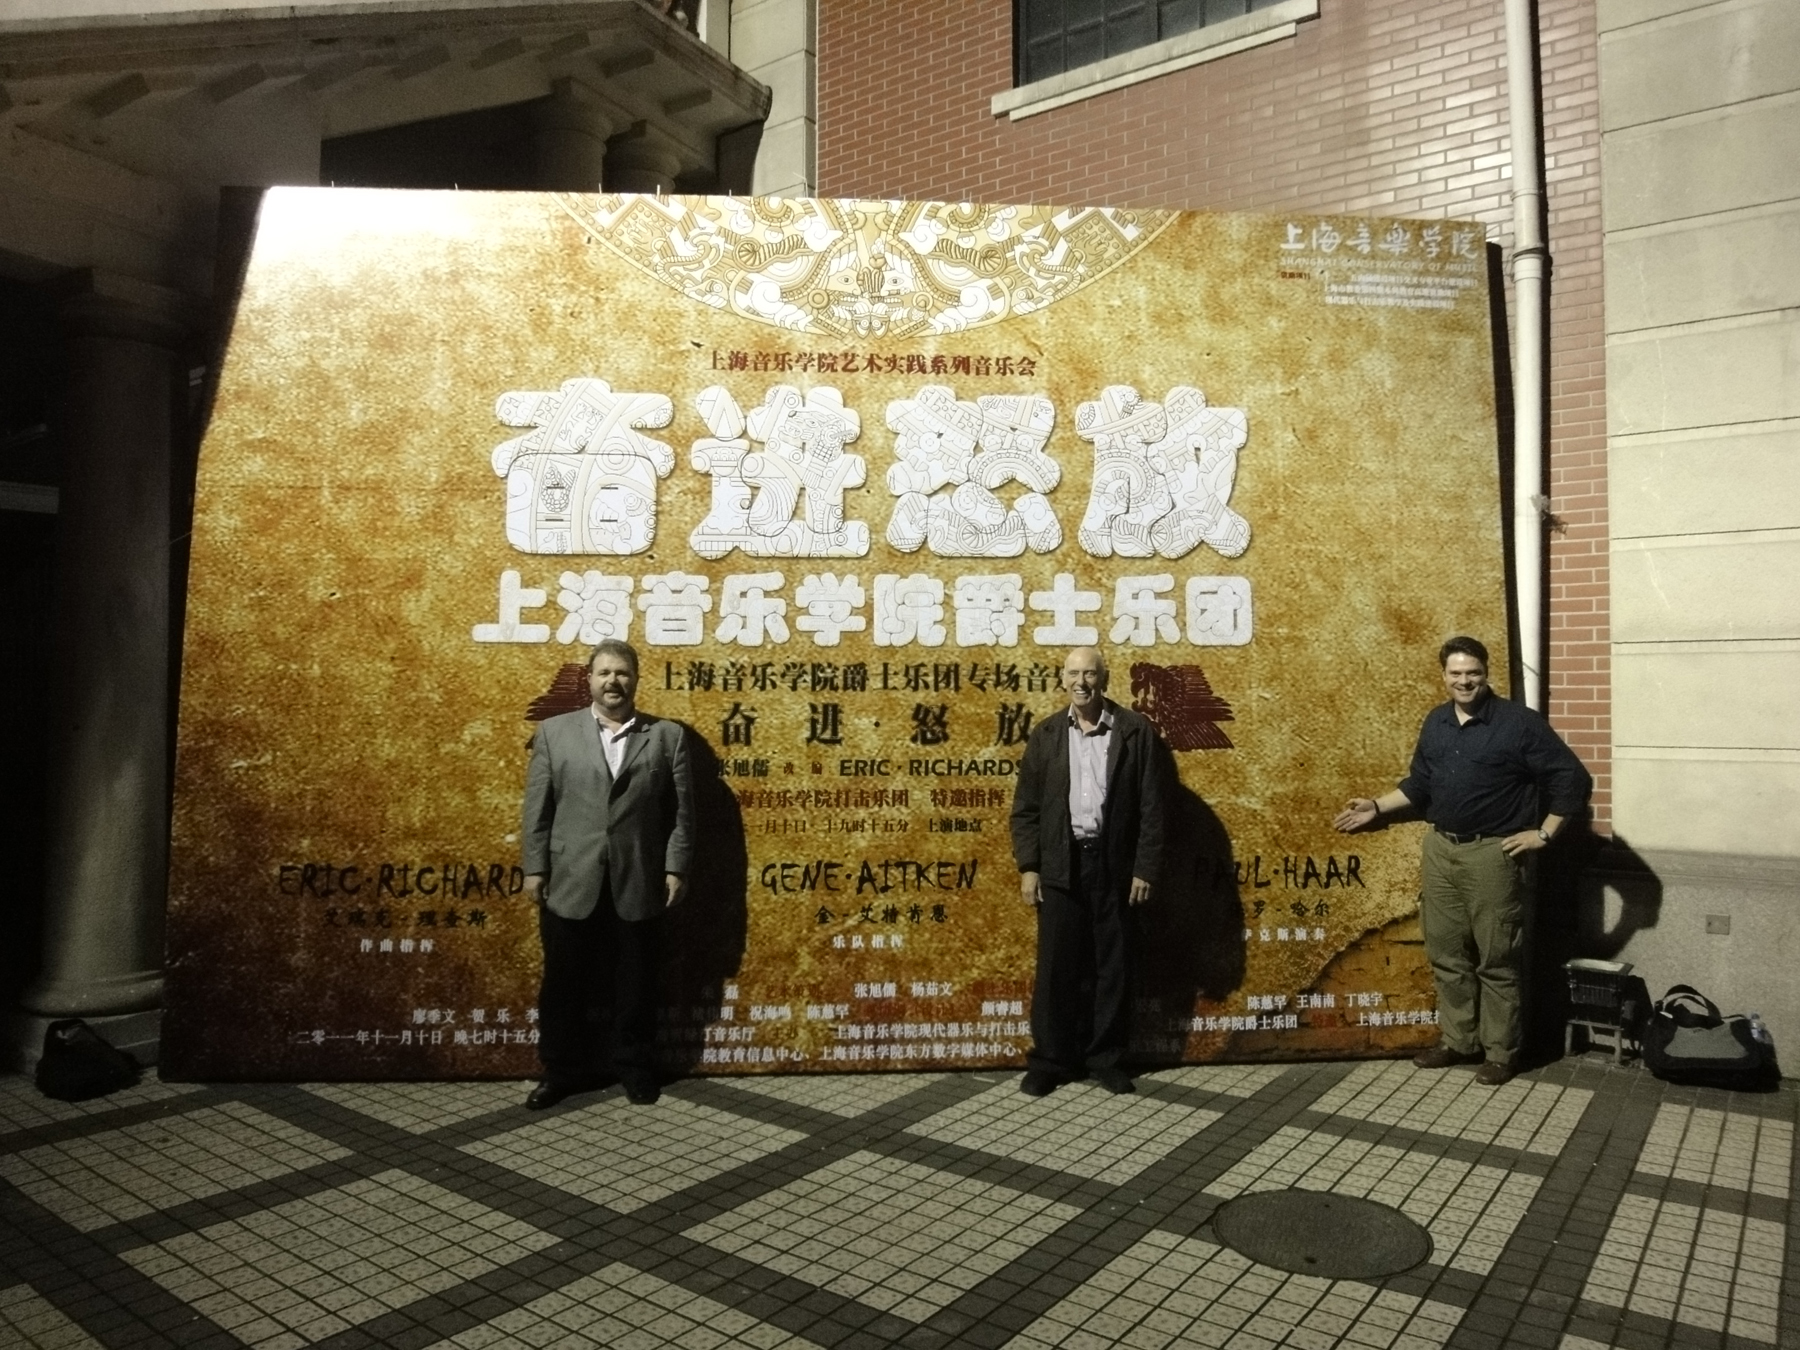 (From left) Eric Richards, Gene Aitken and Paul Haar stand next to a poster advertising the Shanghai Conservatory Jazz Orchesta's concert featuring the commissioned work of Richards with guest soloist Haar.